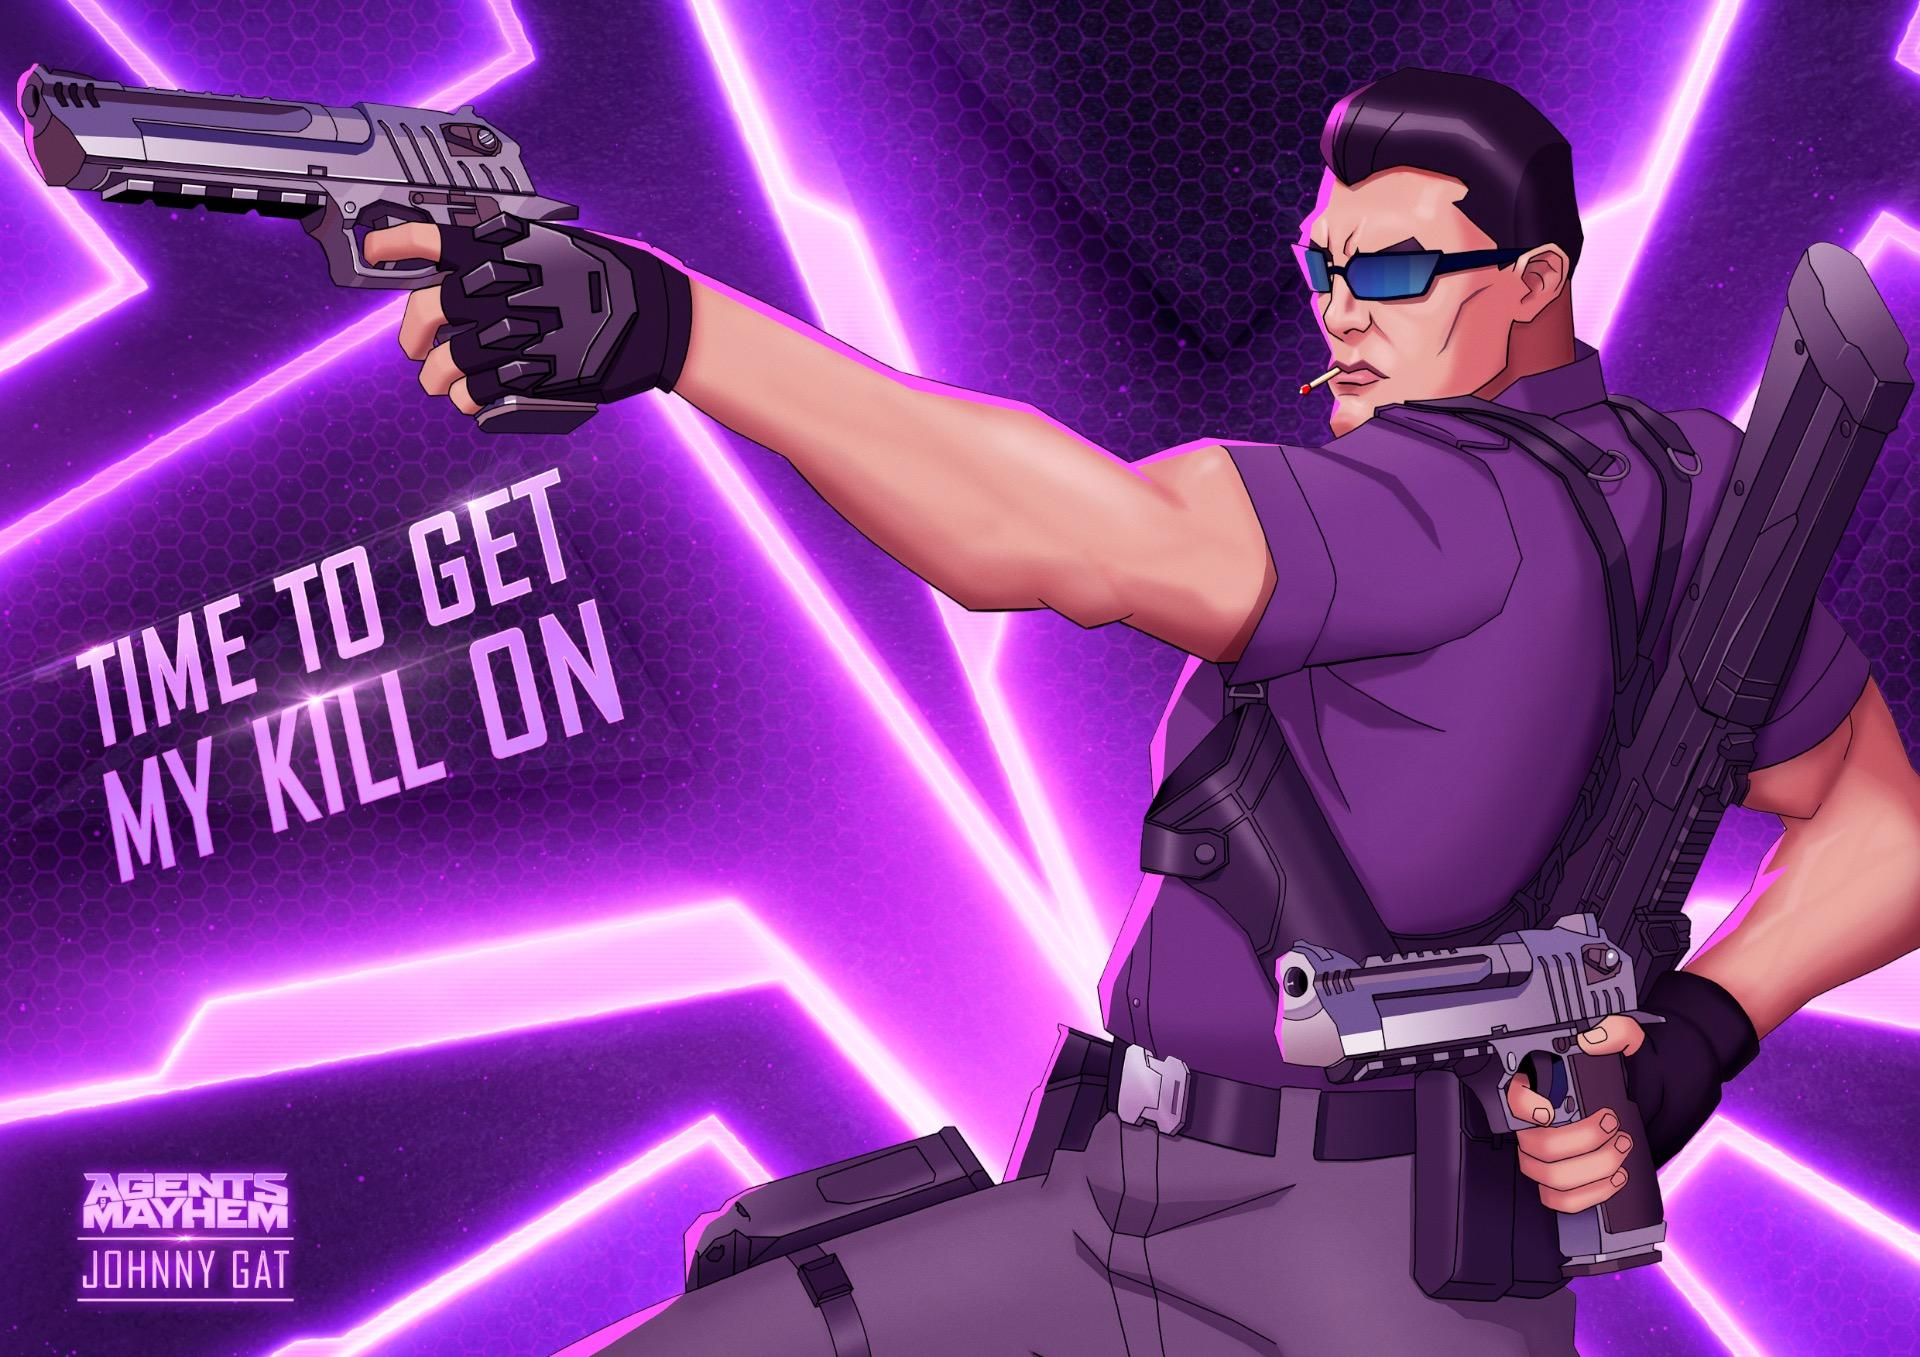 Two Pre-Order Characters Announced for Agents of Mayhem, Including Johnny Gat